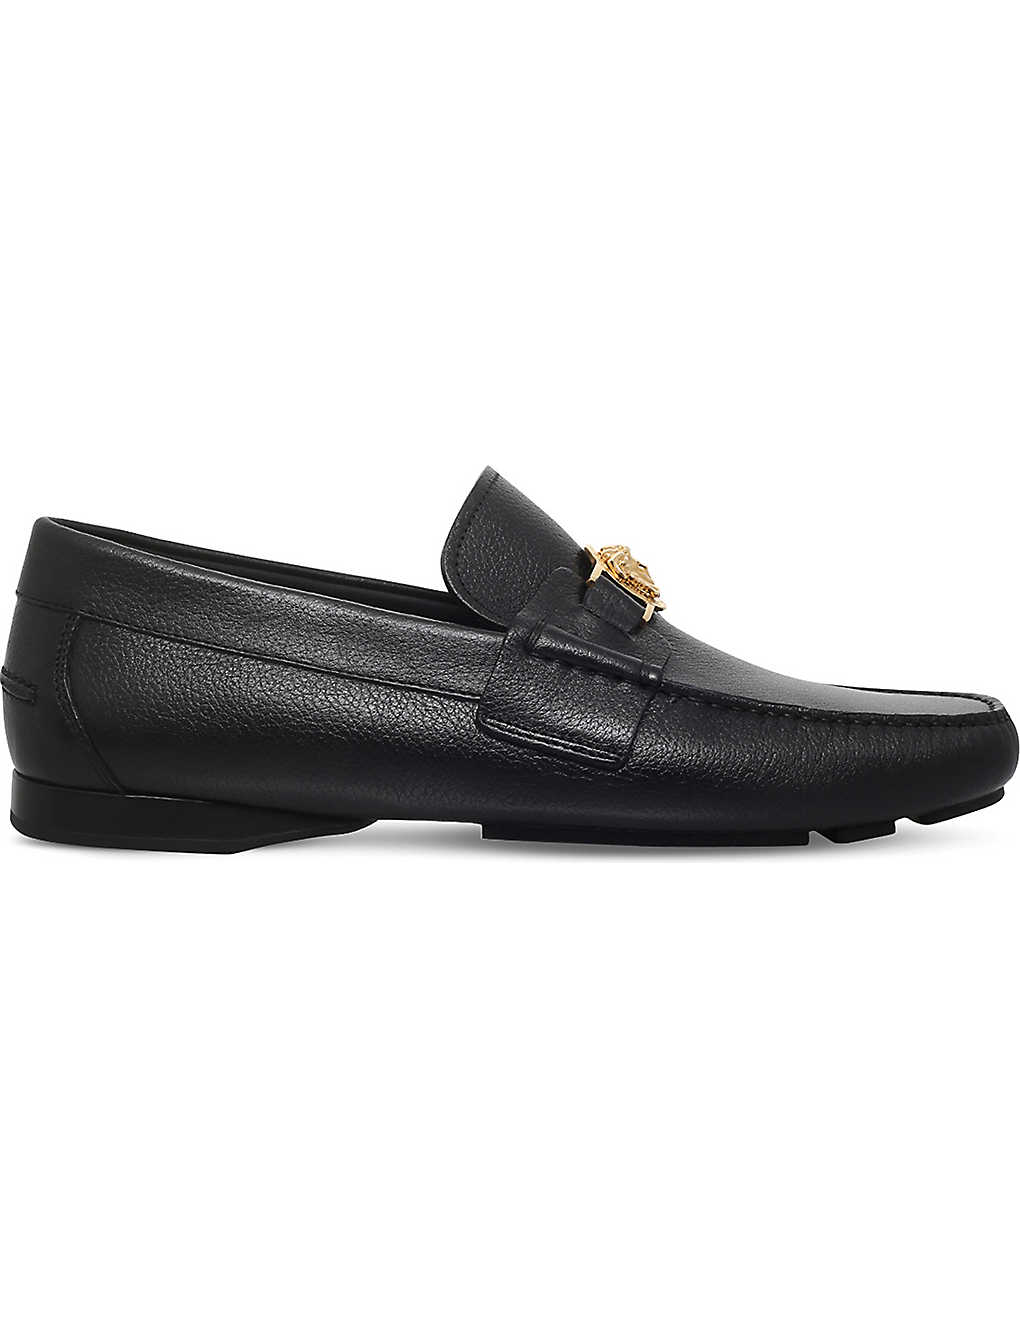 9cc0cf0232b VERSACE - Medusa leather penny loafers